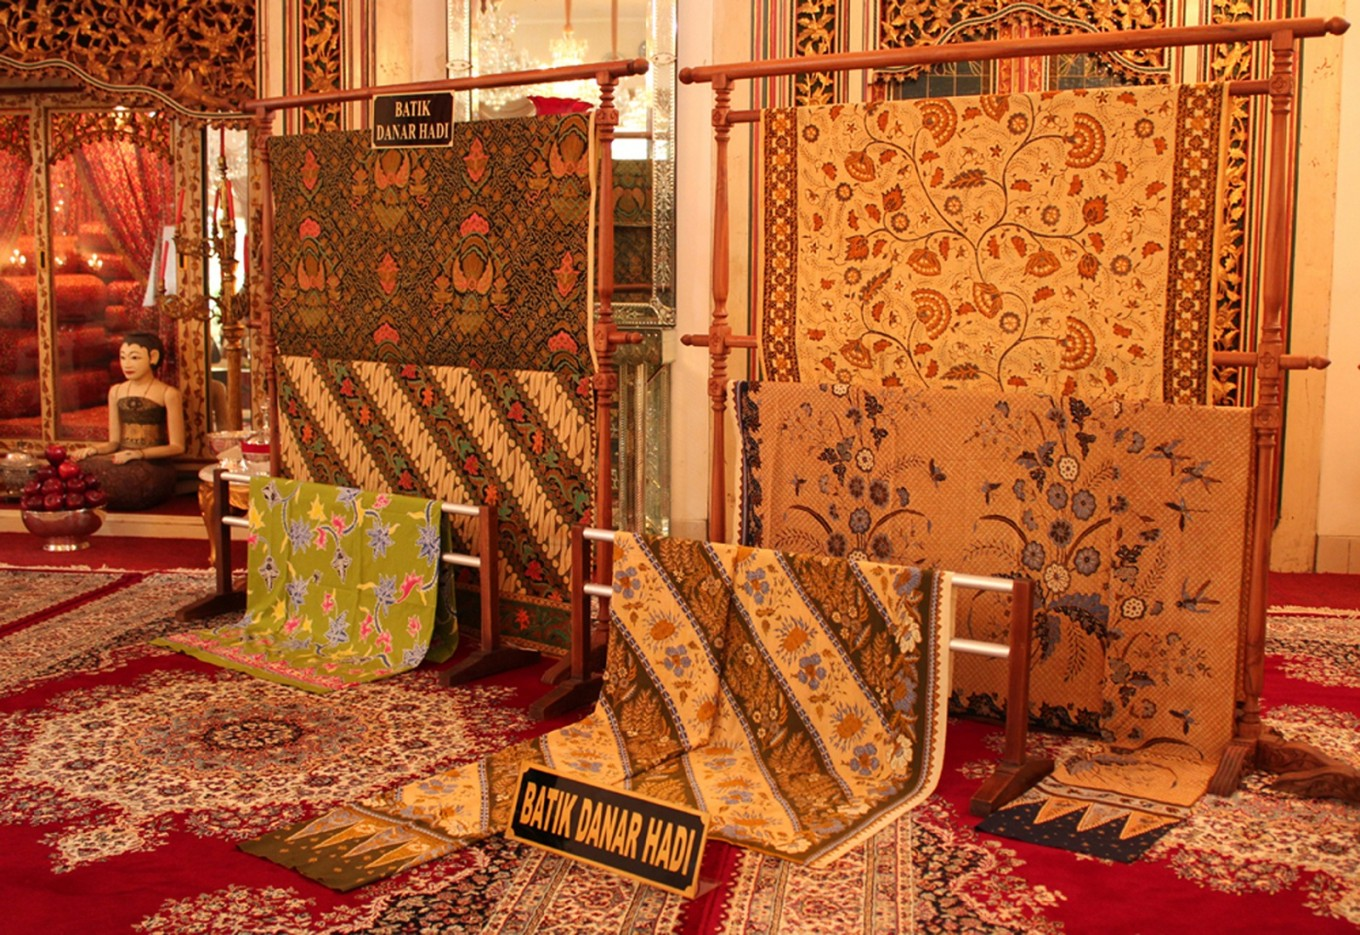 A vast number of old batik fabrics can be found at Danar Hadi's Dalem Wuryaningratan museum on Jl. Slamet Riyadi, Surakarta, Central Java.